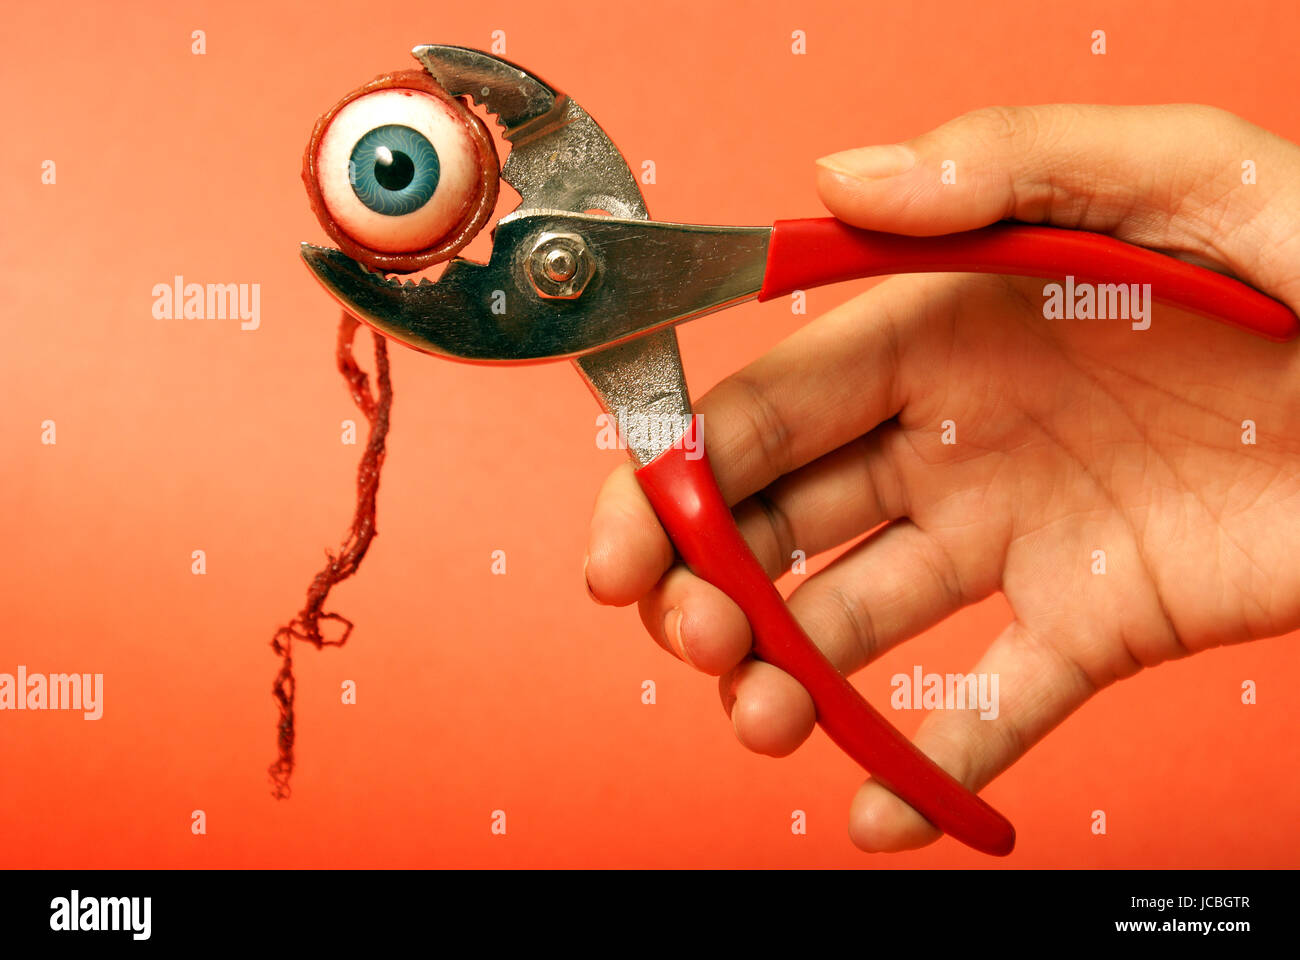 An eyeball feels the squeeze of a pair of pliers. - Stock Image